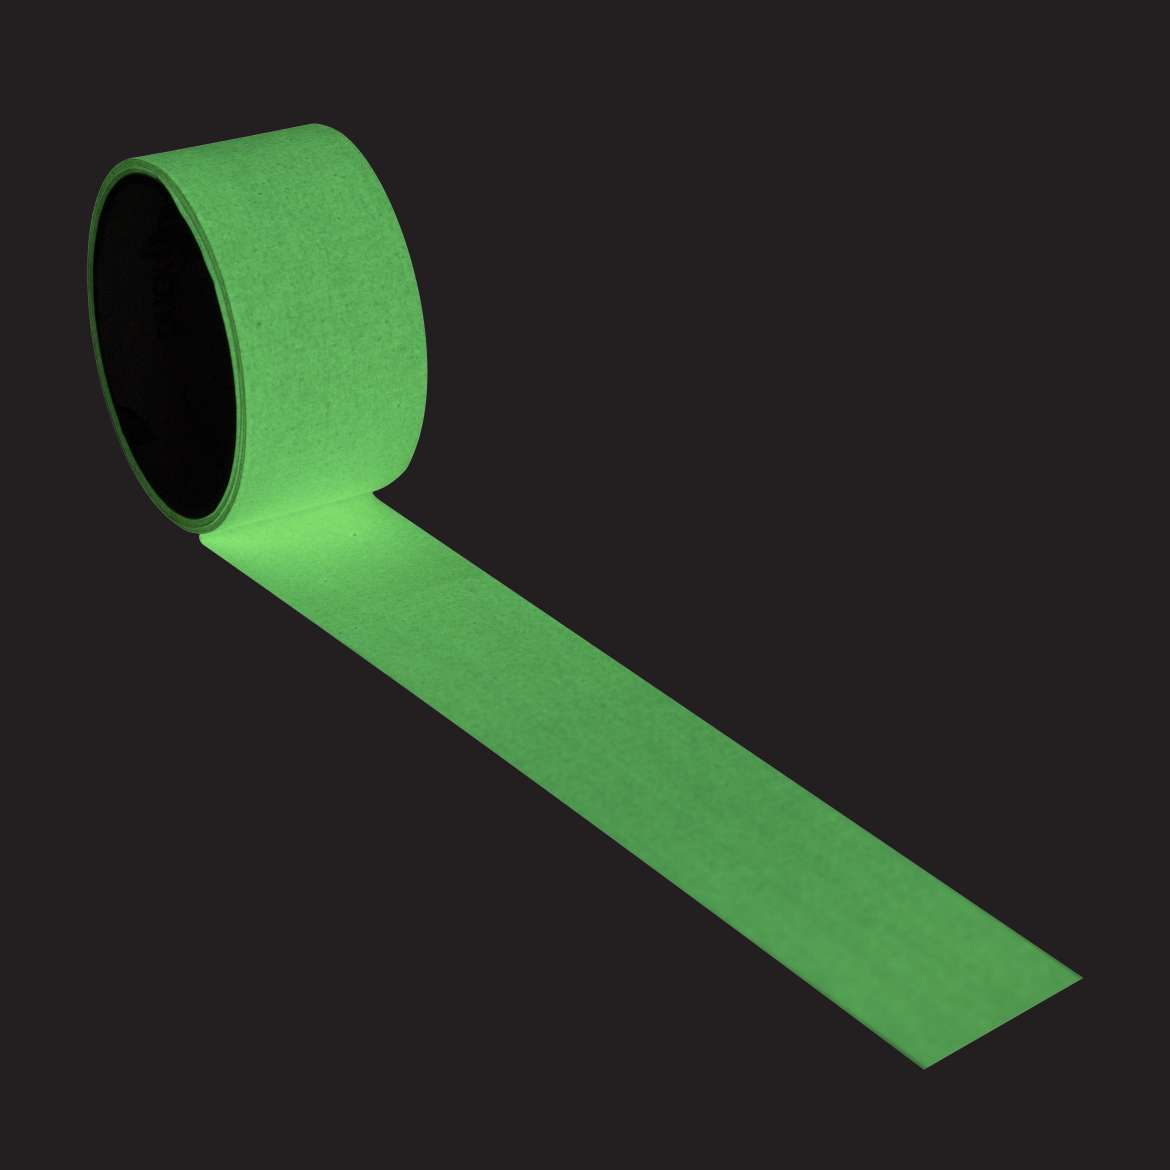 Glow In The Dark Tape - Never lose your equipment in the depths of your tent or rucksack again